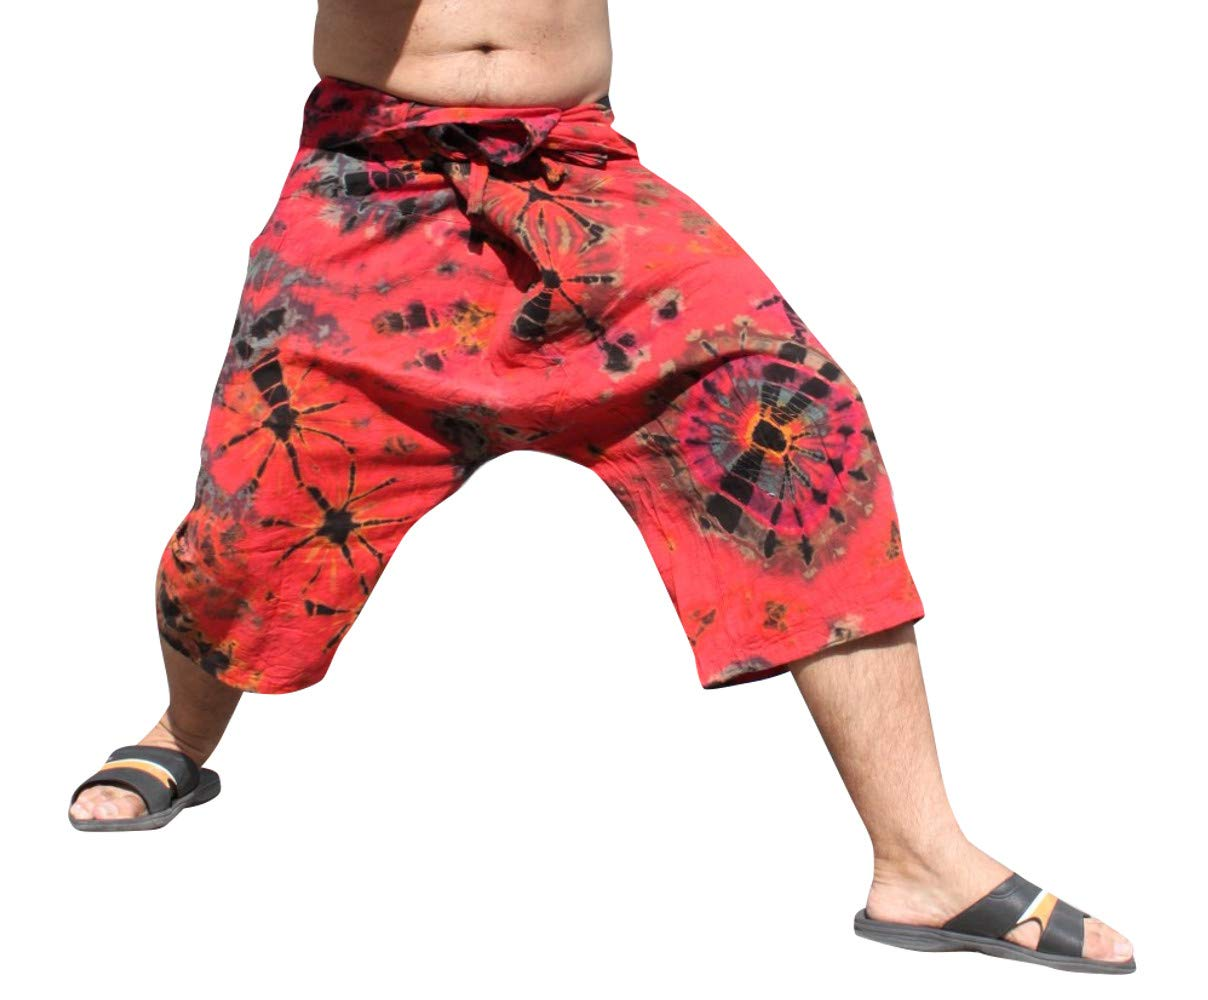 Full Funk Cotton Tie Dyed Natural Colorful Thai Fisherman Wrap 3/4 Leg Pants, Small, Indian Red by Full Funk